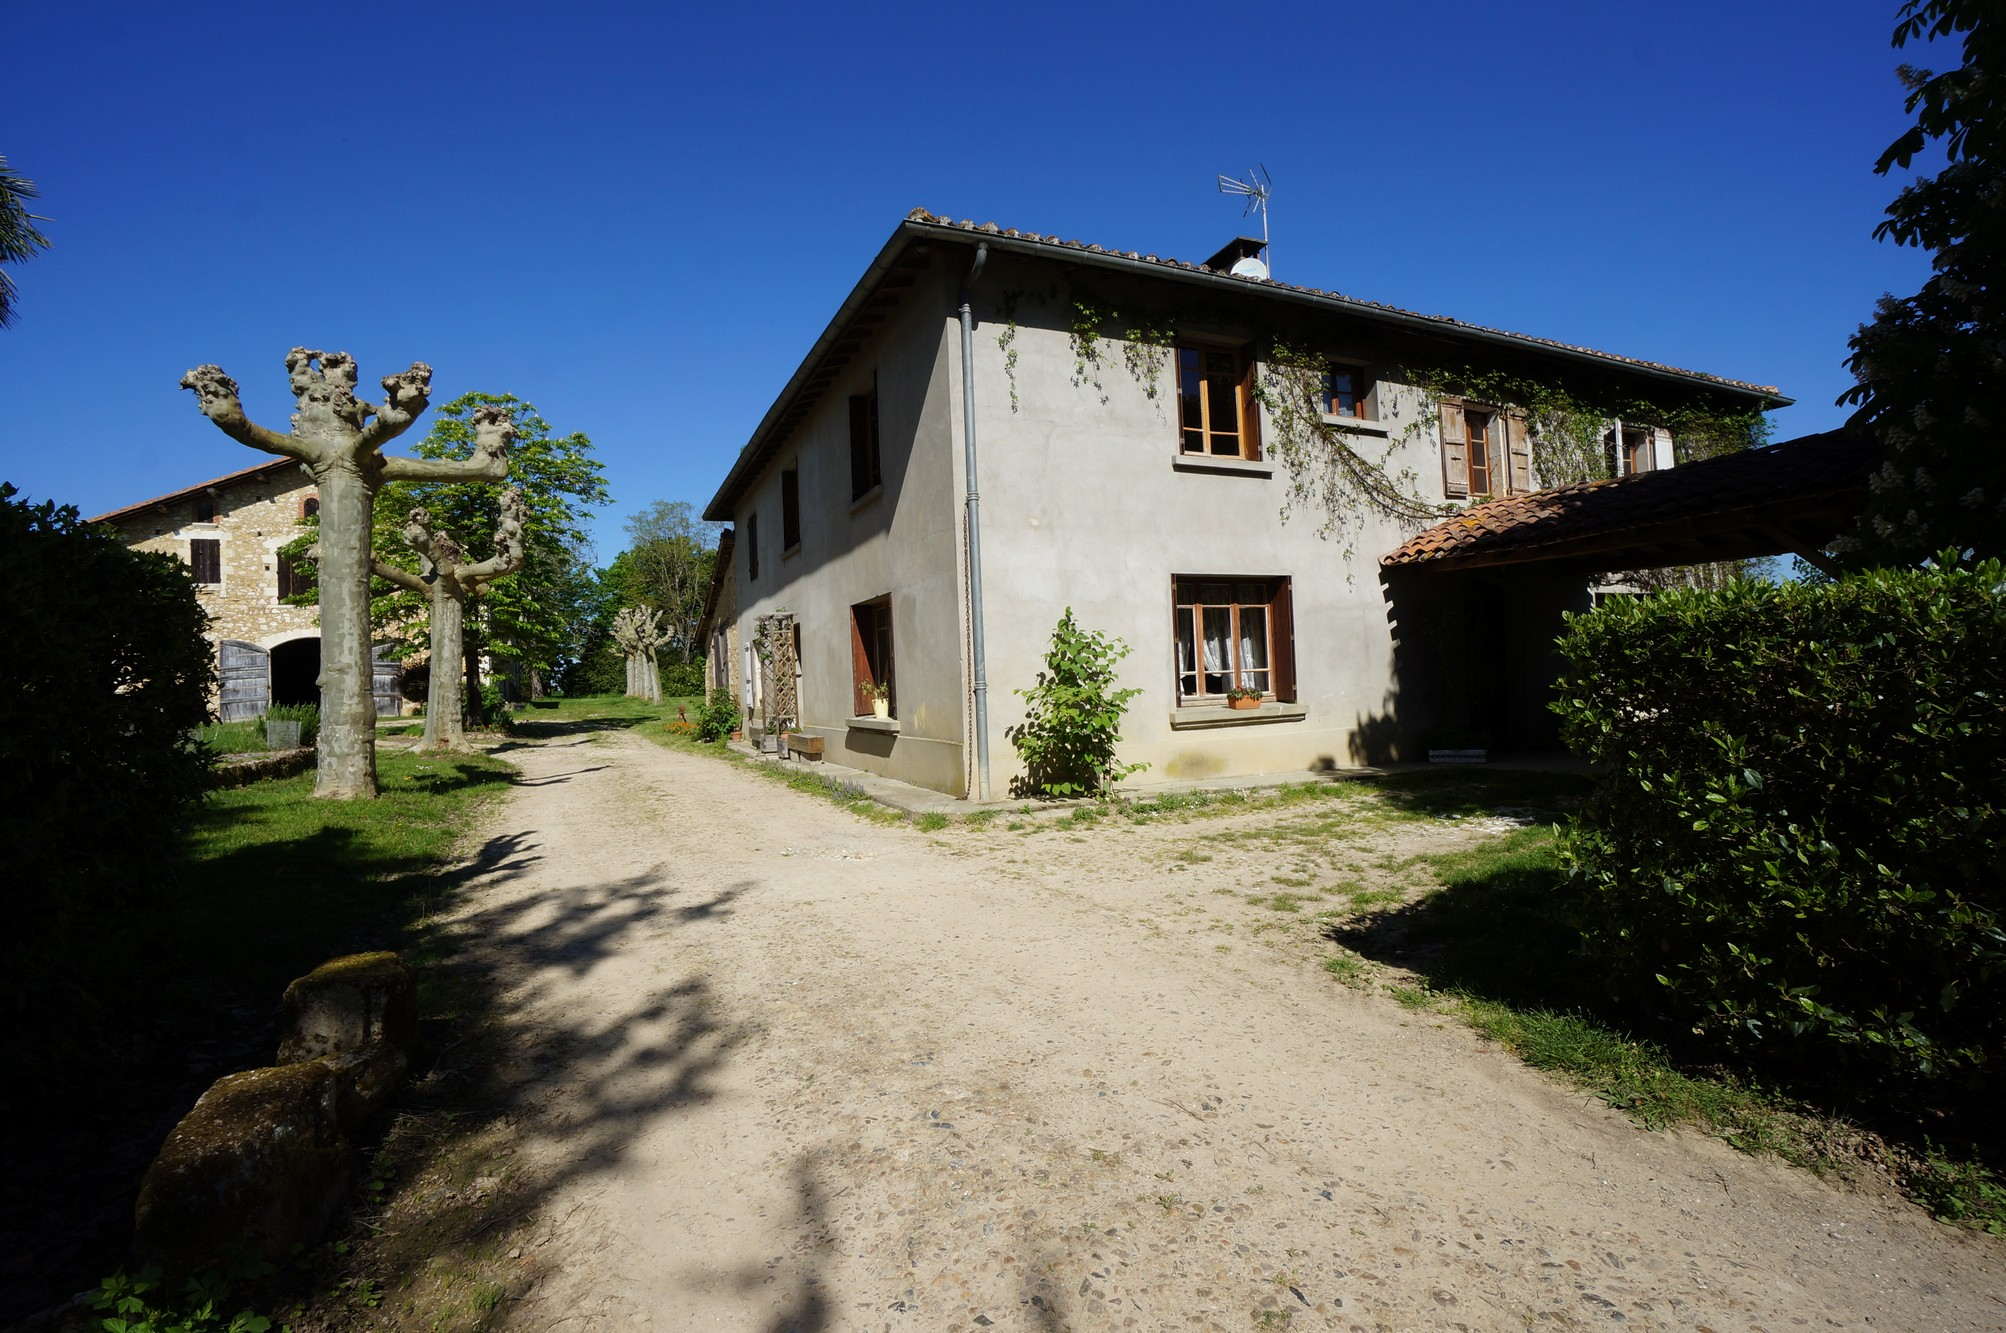 Ma maison immobilier condom gers charme rural for Maison immobilier